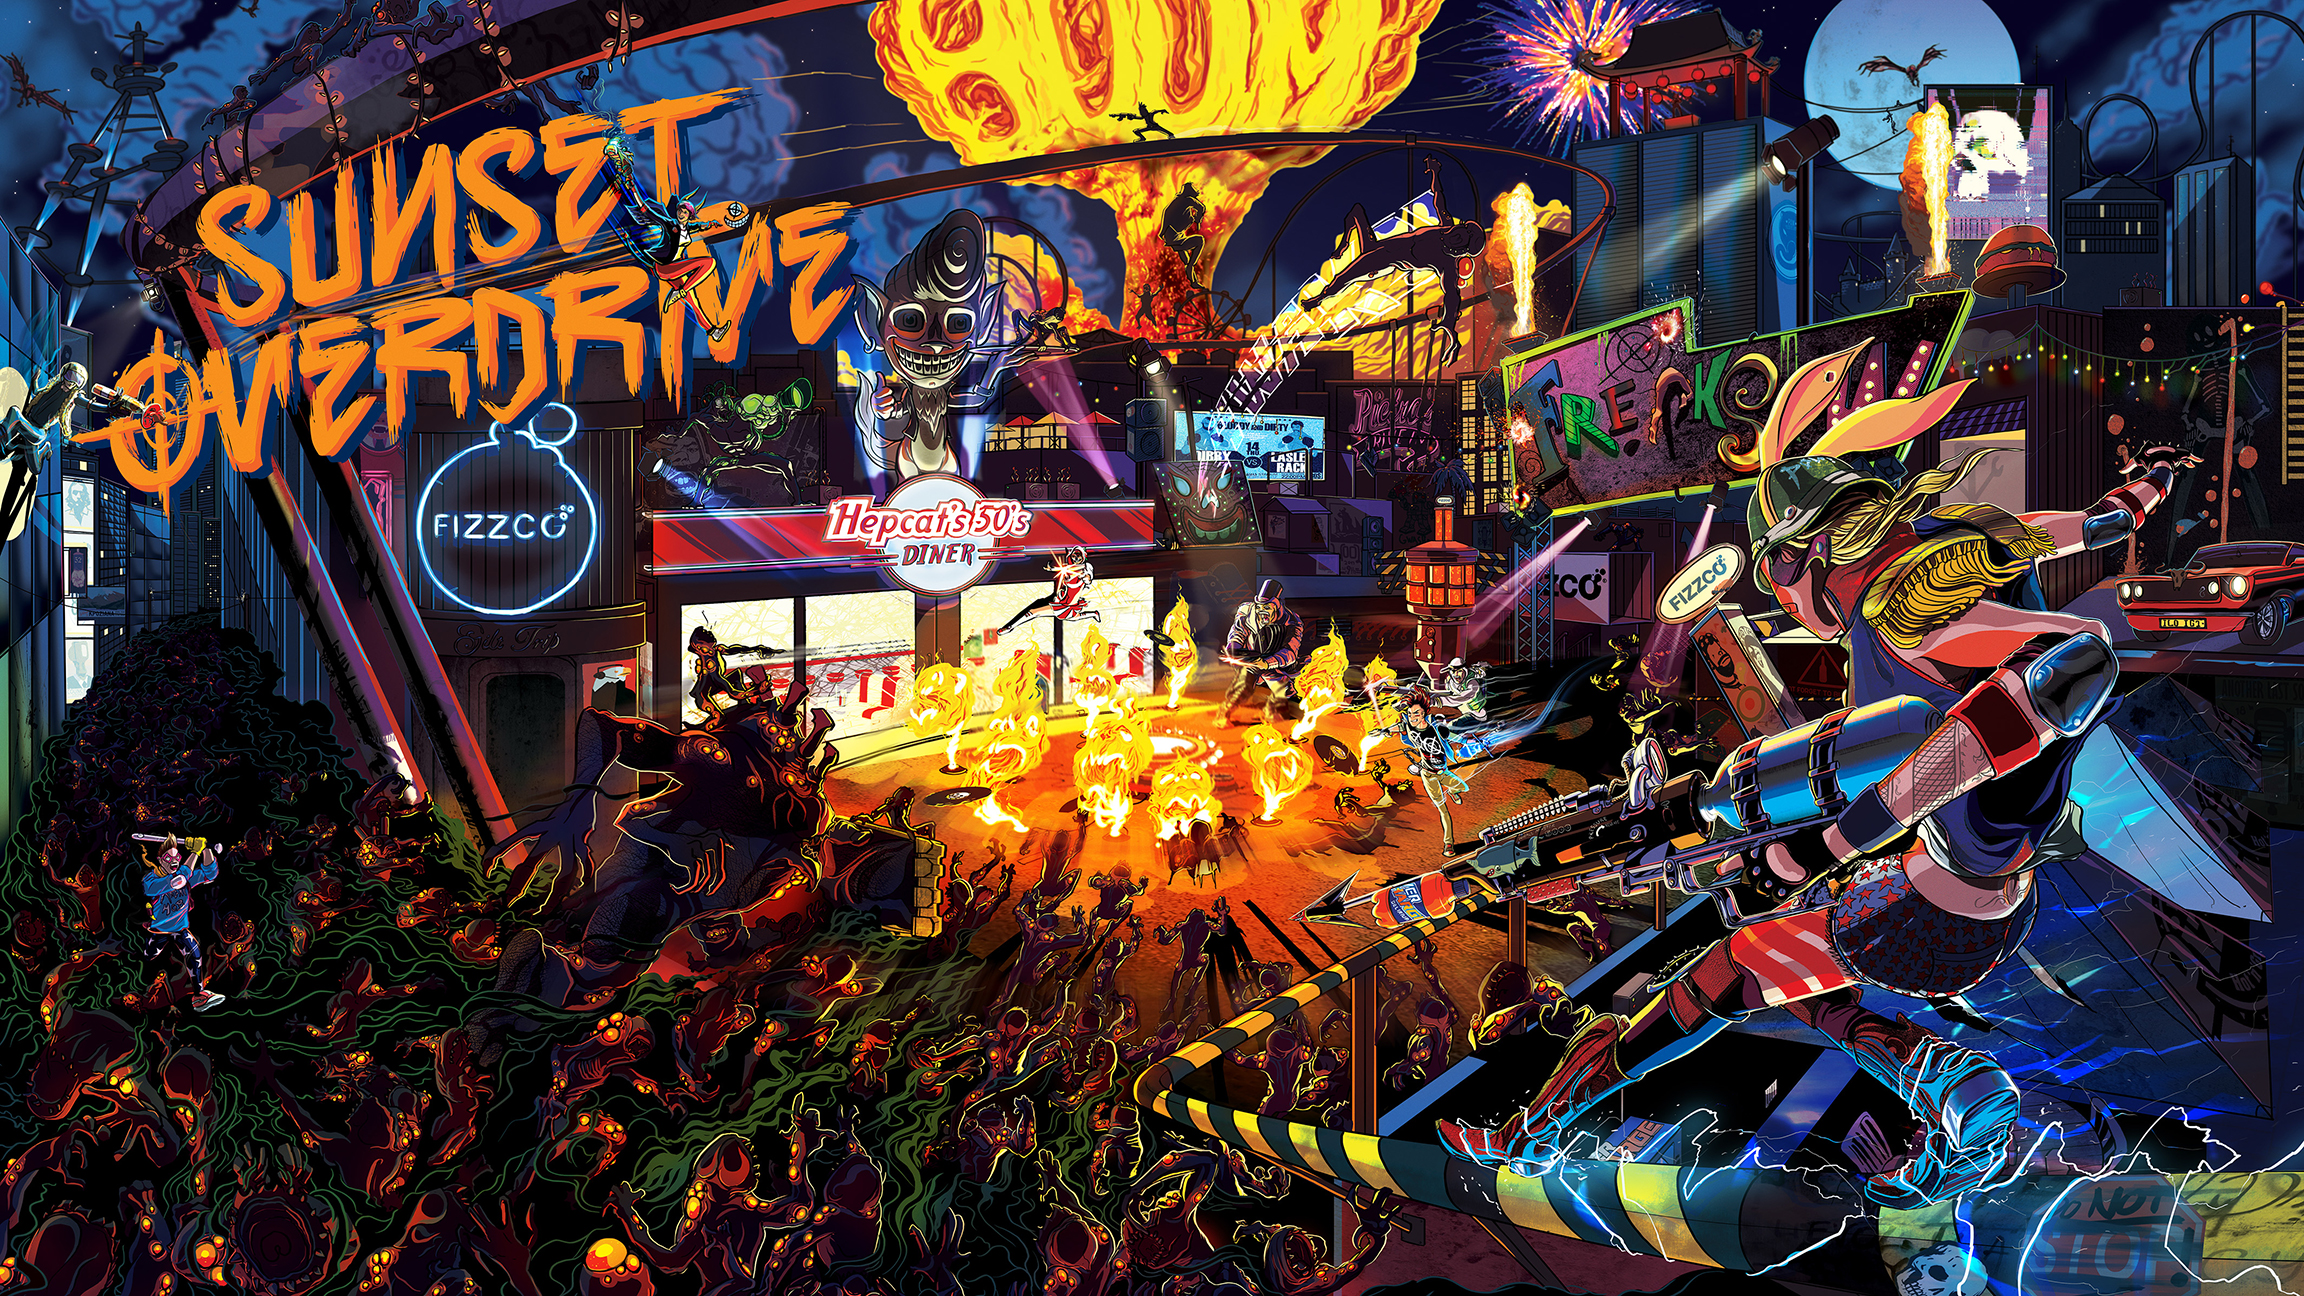 sunset overdrive iphone 6 wallpaper